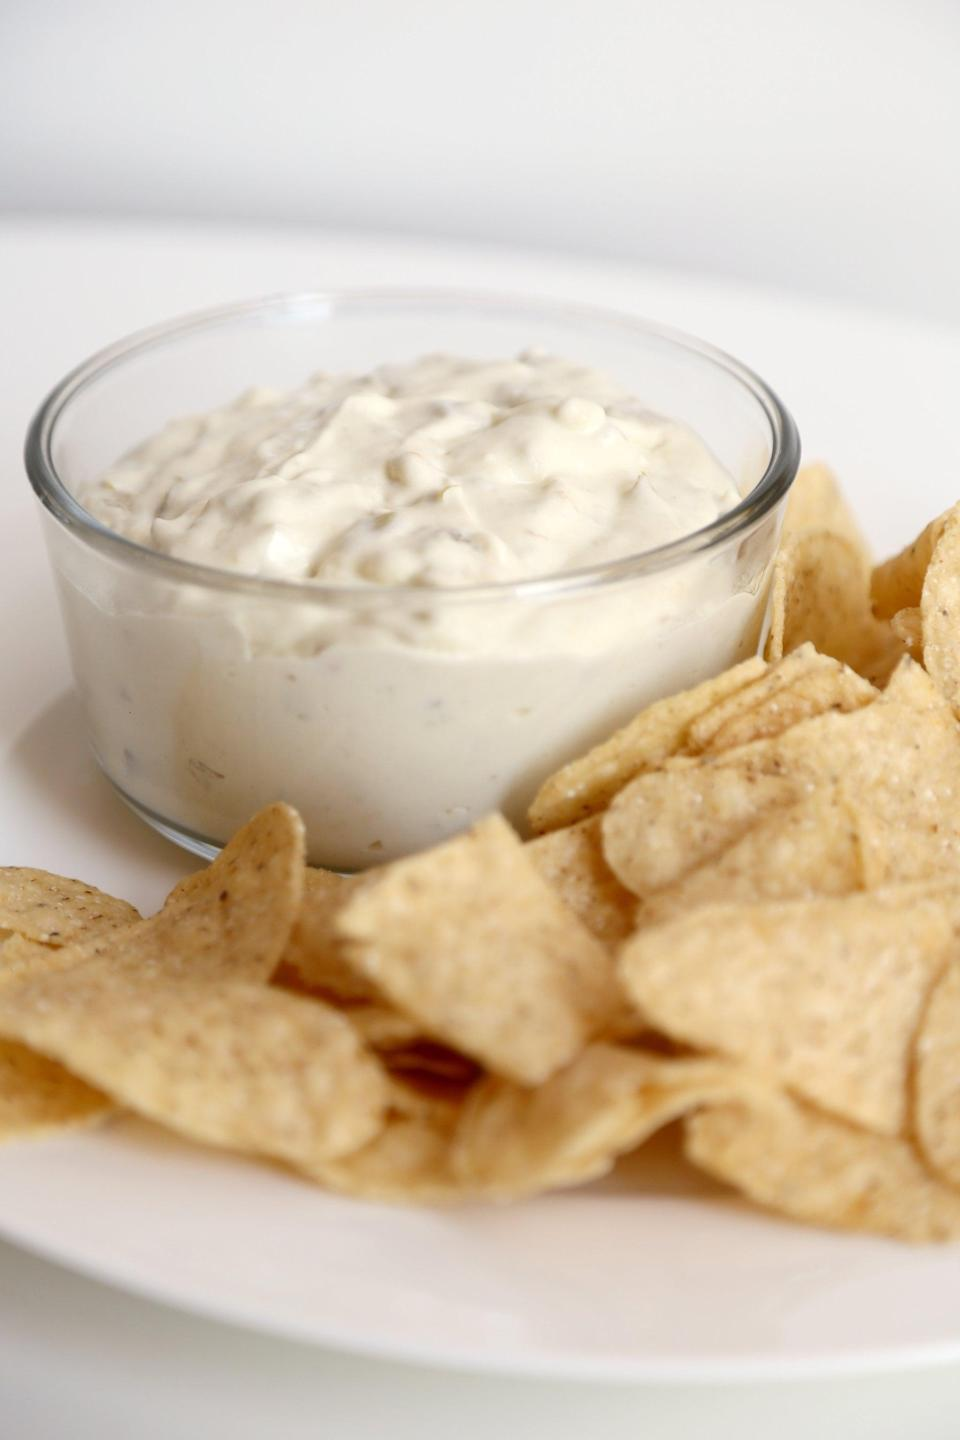 "<p>OK, so this isn't a prepackaged queso from Trader Joe's. But it's made with four cheap ingredients from Trader Joe's (cream cheese, smoked cheddar, fire-roasted diced green chiles, and half and half) and is crazy delicious. </p> <p><strong>Get the recipe:</strong> <a href=""https://www.popsugar.com/food/How-Microwave-Queso-Dip-40080587"" class=""link rapid-noclick-resp"" rel=""nofollow noopener"" target=""_blank"" data-ylk=""slk:microwave queso recipe"">microwave queso recipe</a></p>"